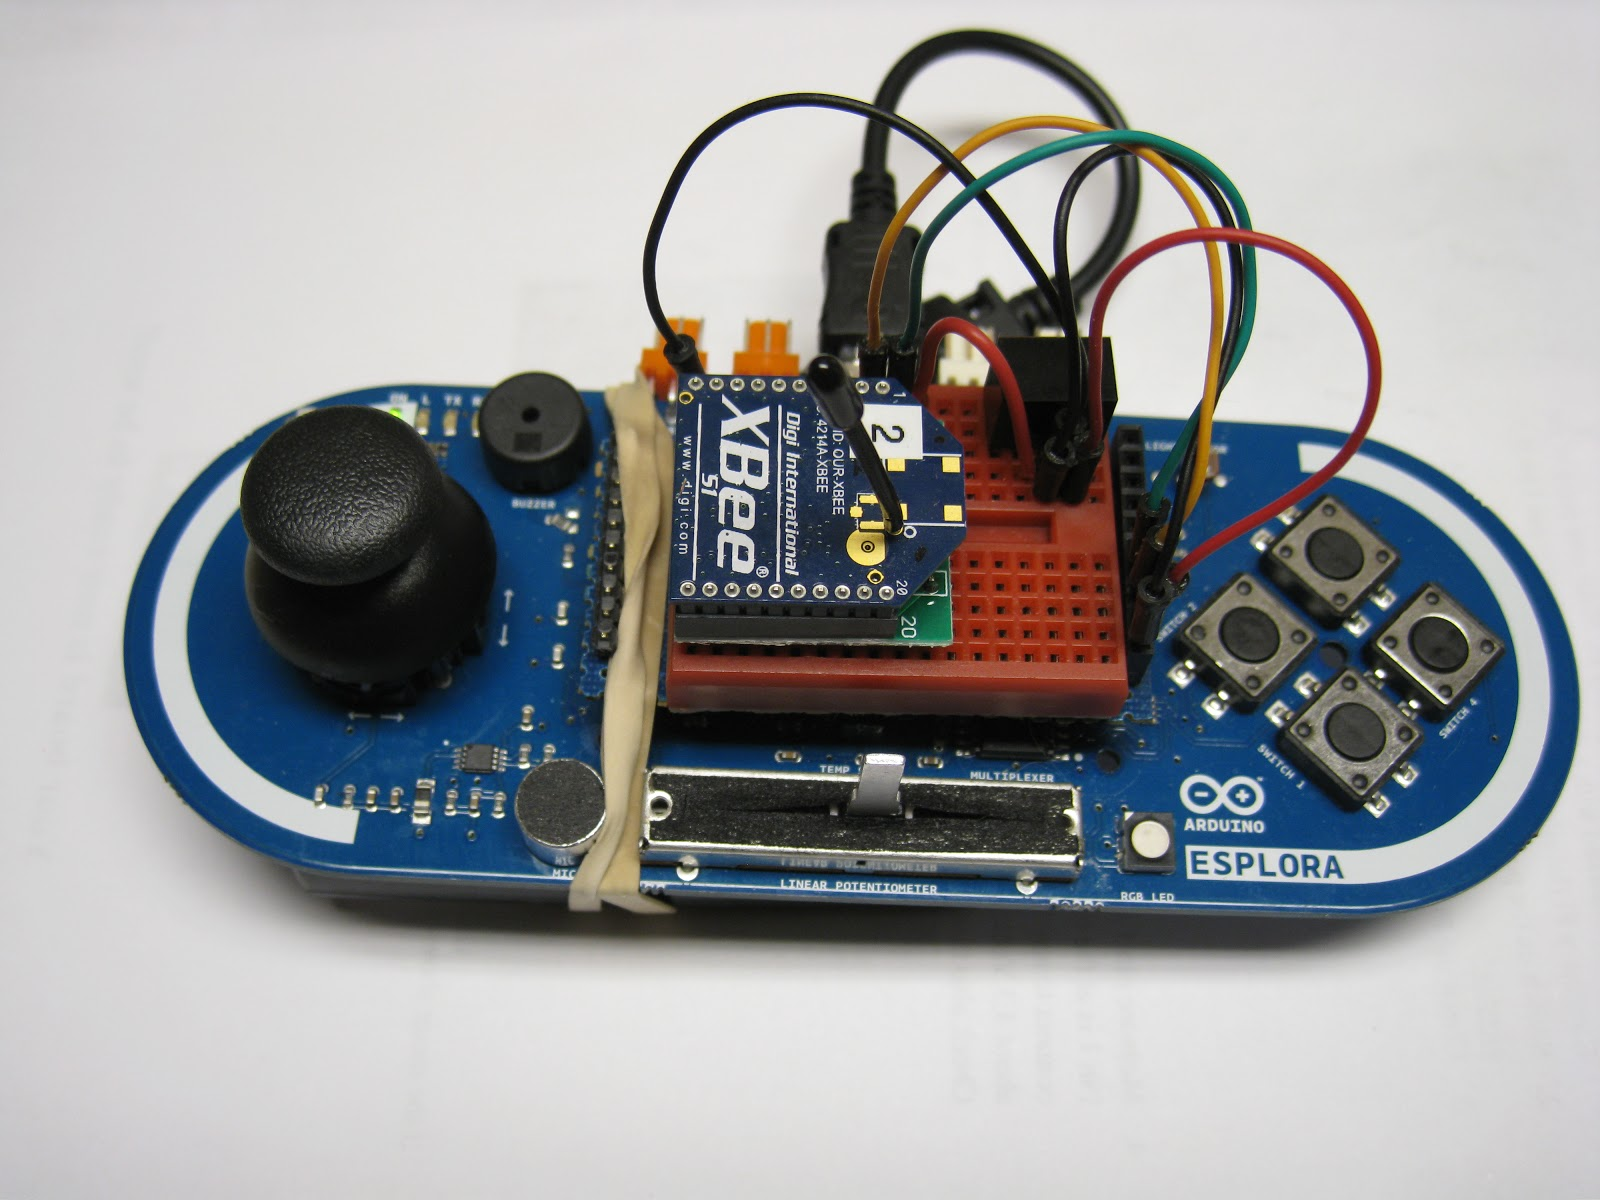 The 21st Century Digital Home: Arduino Esplora as a fully